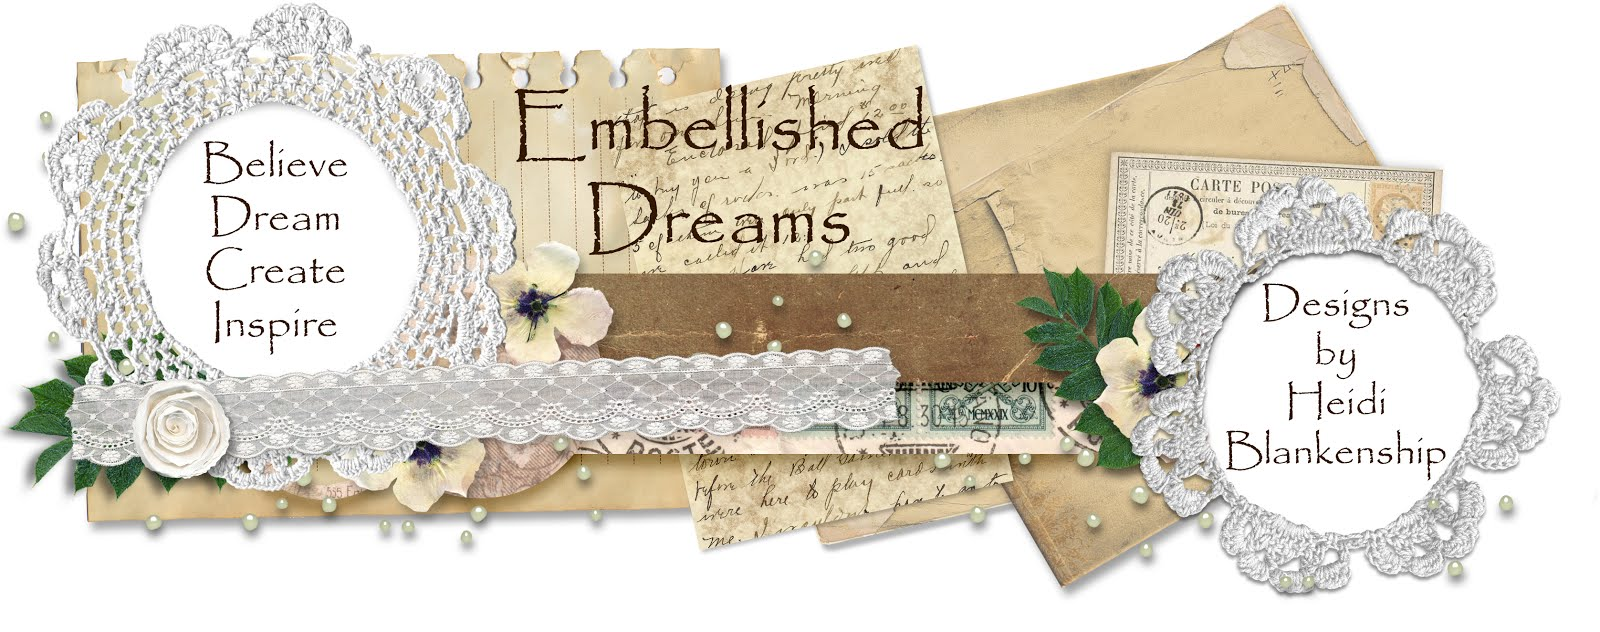 Embellished Dreams